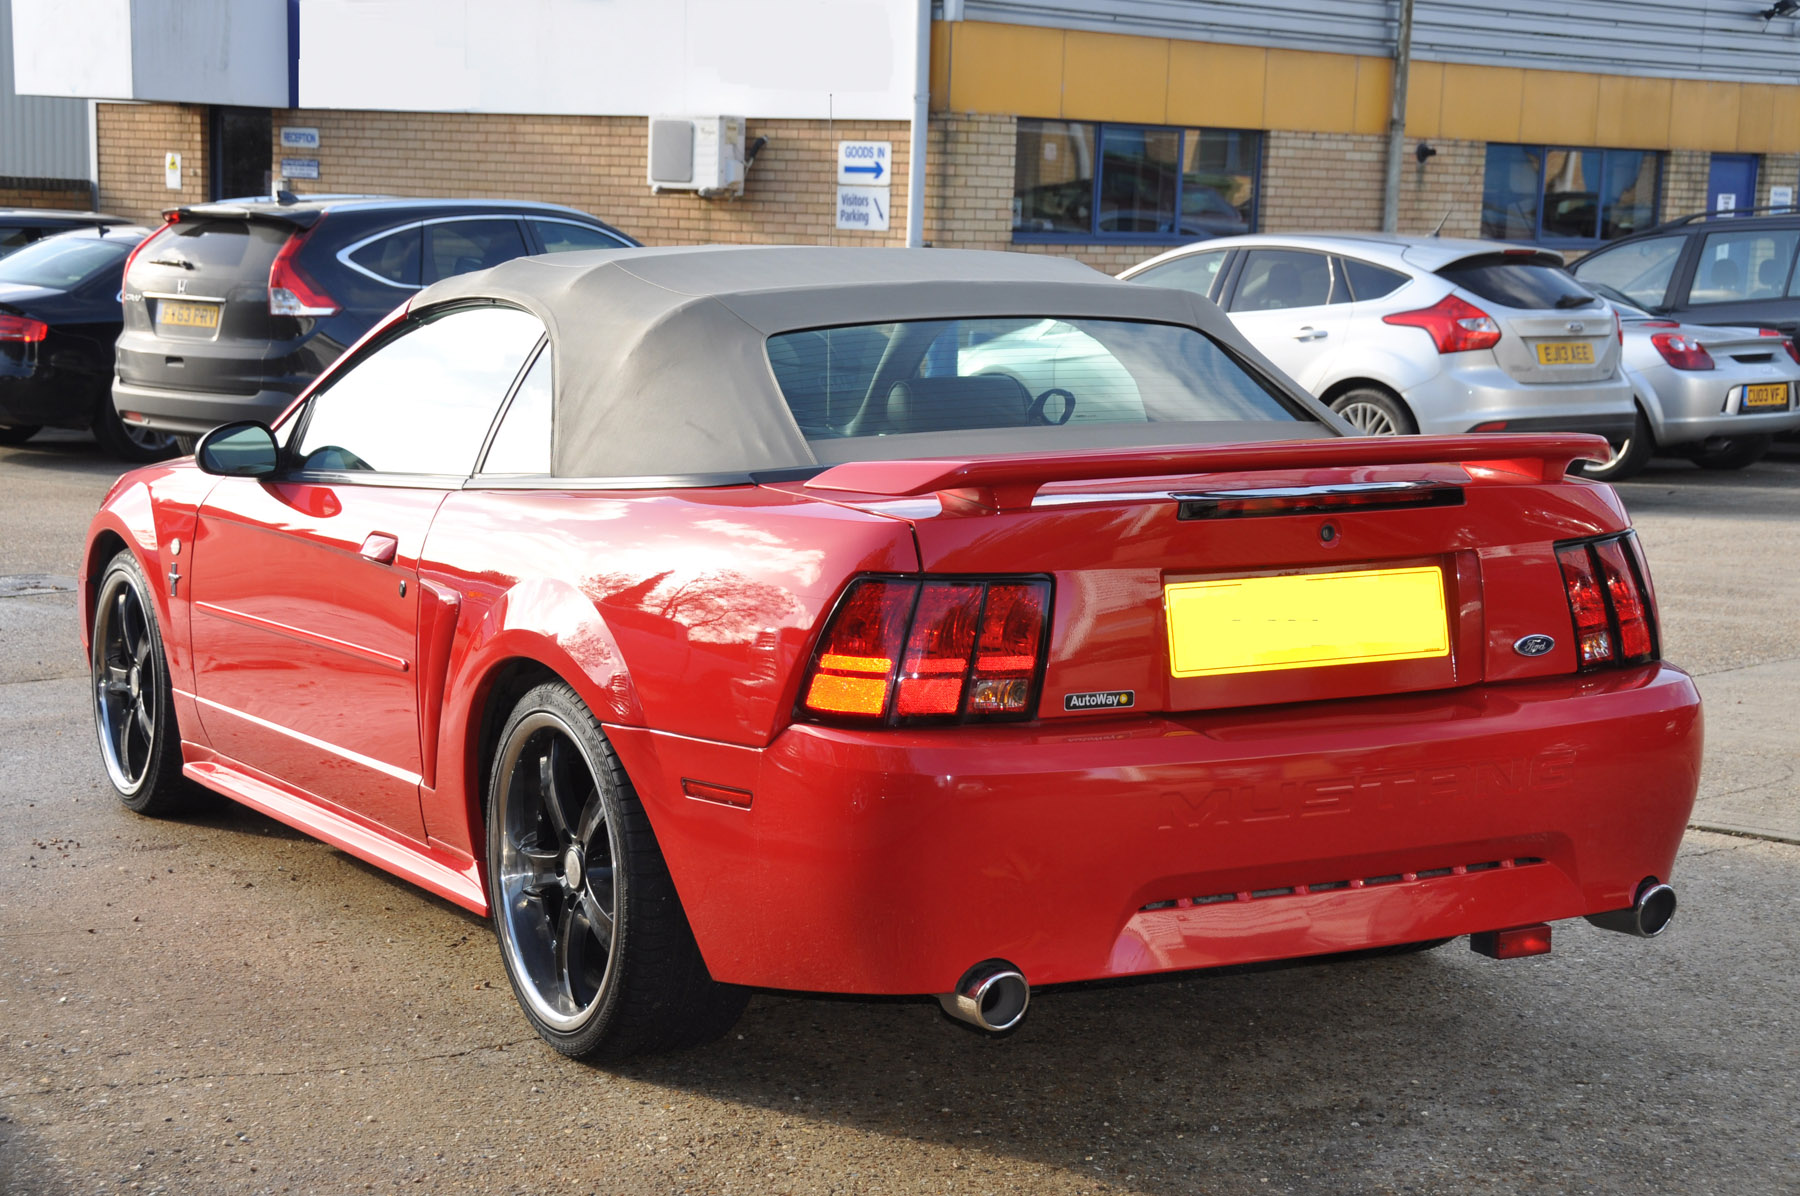 2003 (03) Ford Mustang Convertible Automatic – David Boatwright Partnership | Dodge Ram | F-150 ...